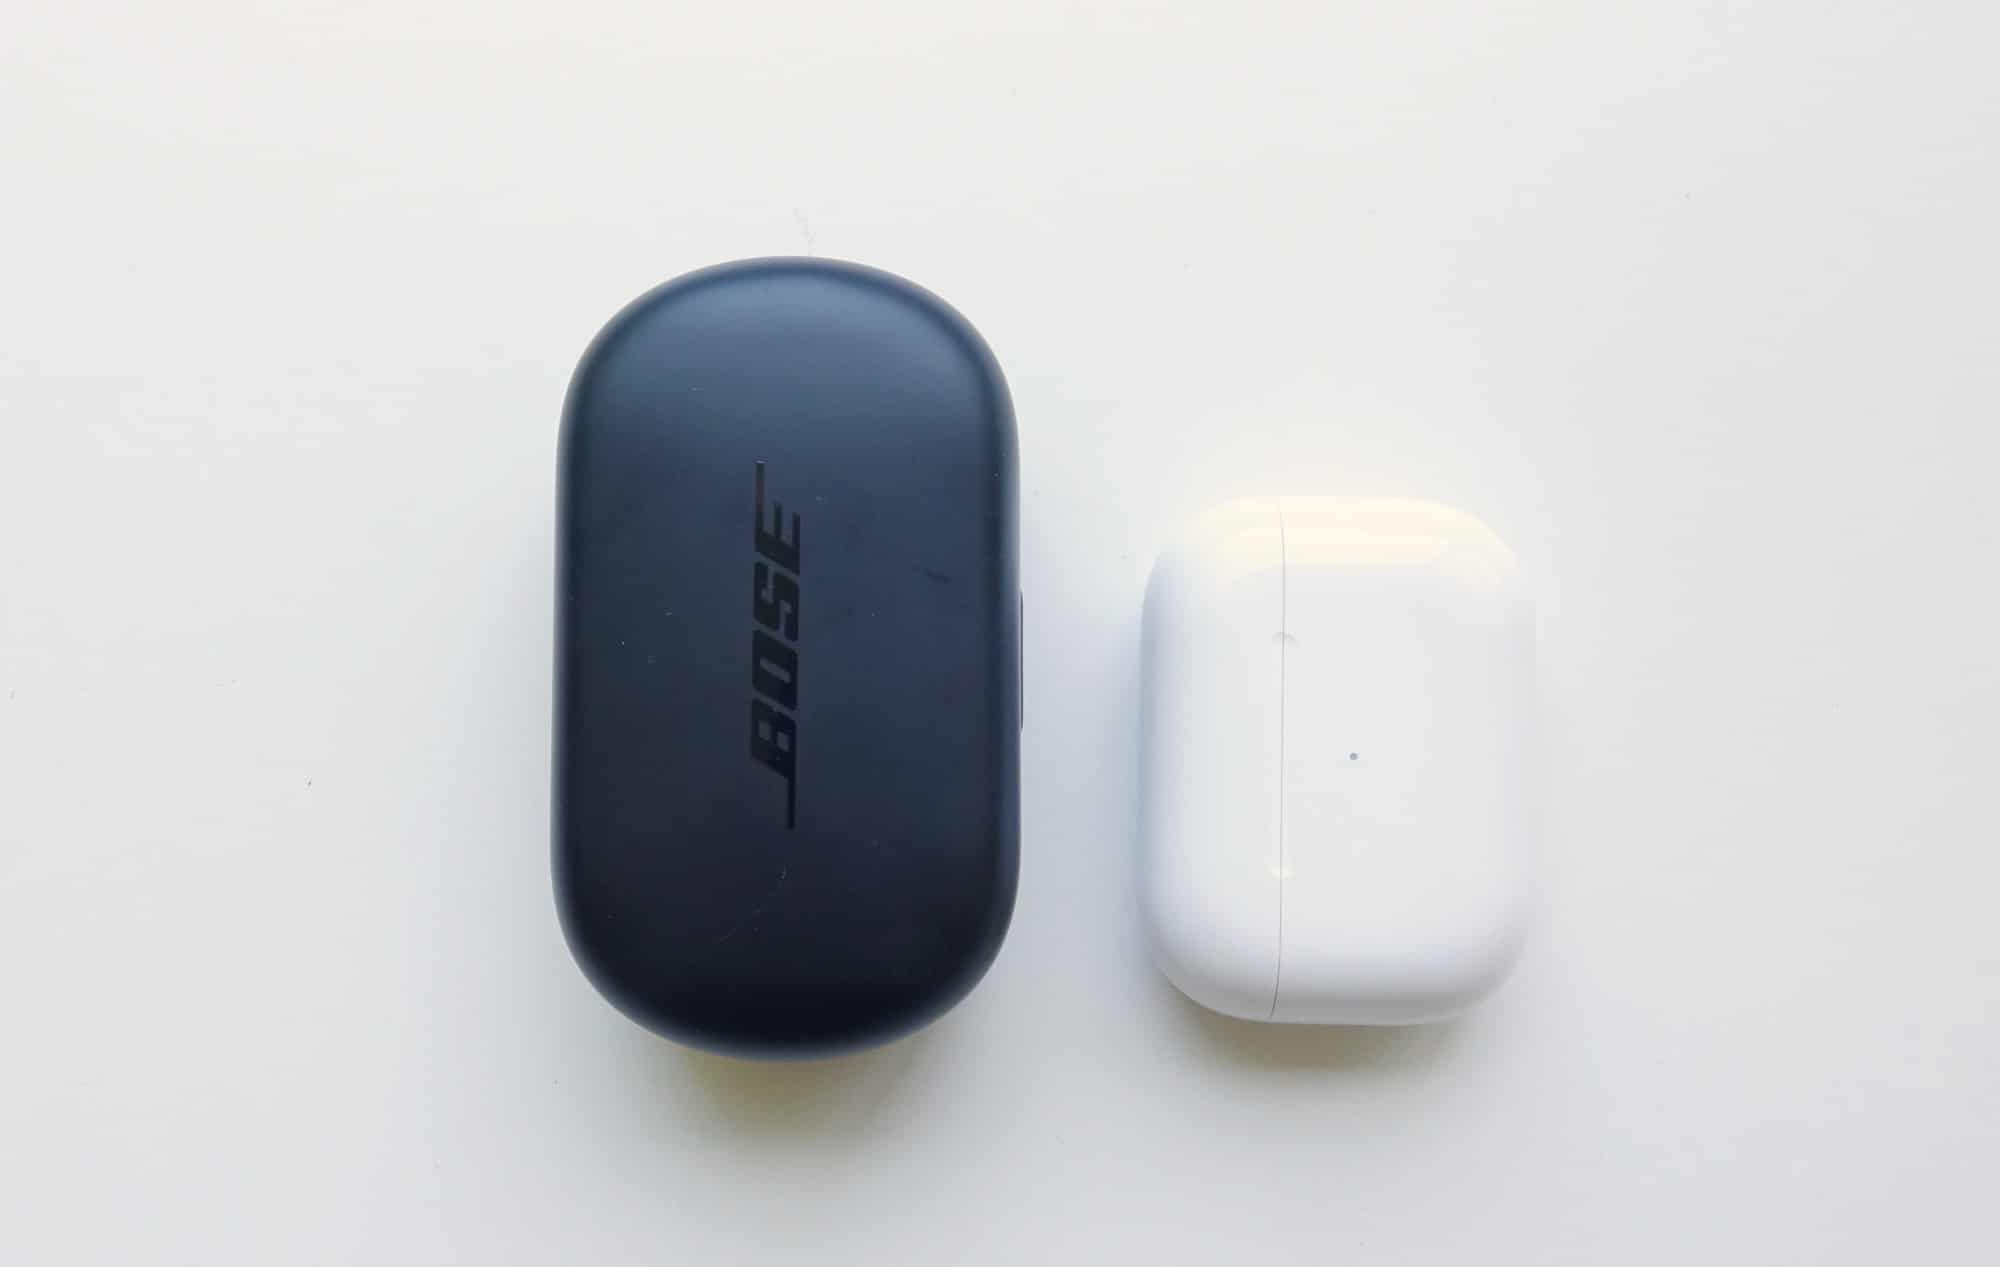 Comparing the Bose QC Earbuds (left) and the Apple AirPods Pro (right)